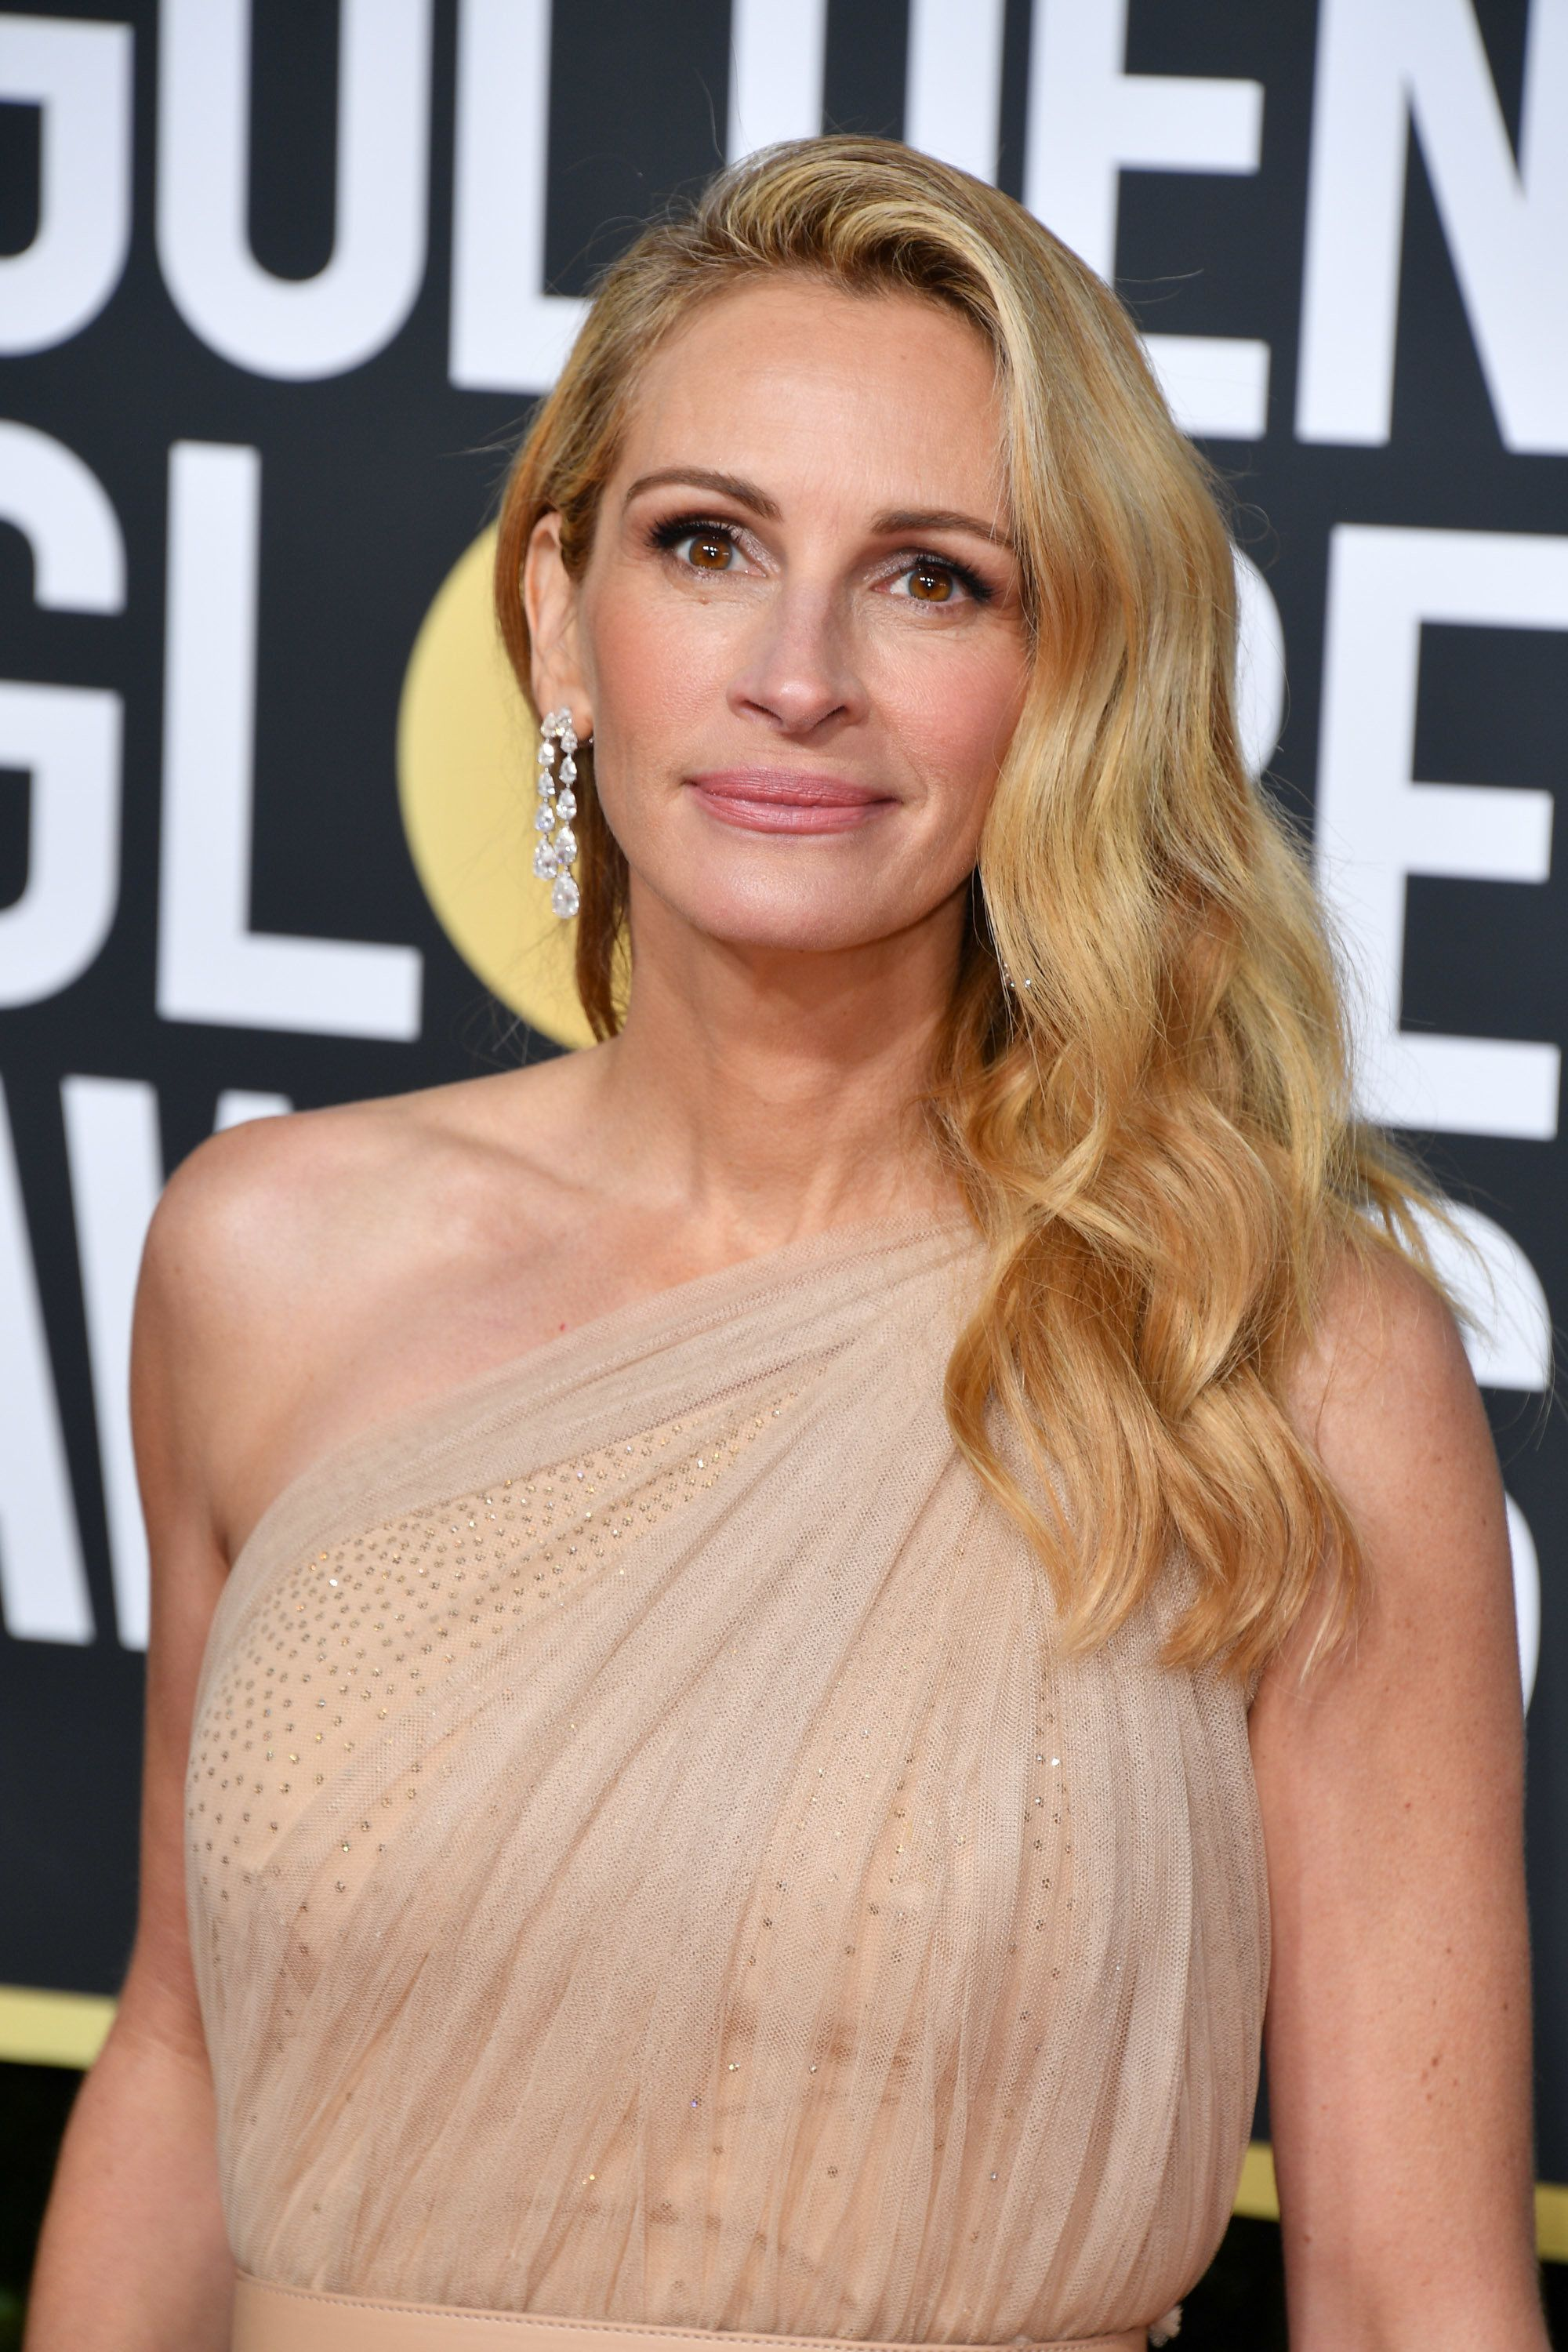 BEVERLY HILLS, CALIFORNIA - JANUARY 06: Julia Roberts attends the 76th Annual Golden Globe Awards held at The Beverly Hilton Hotel on January 06, 2019 in Beverly Hills, California. (Photo by George Pimentel/WireImage)